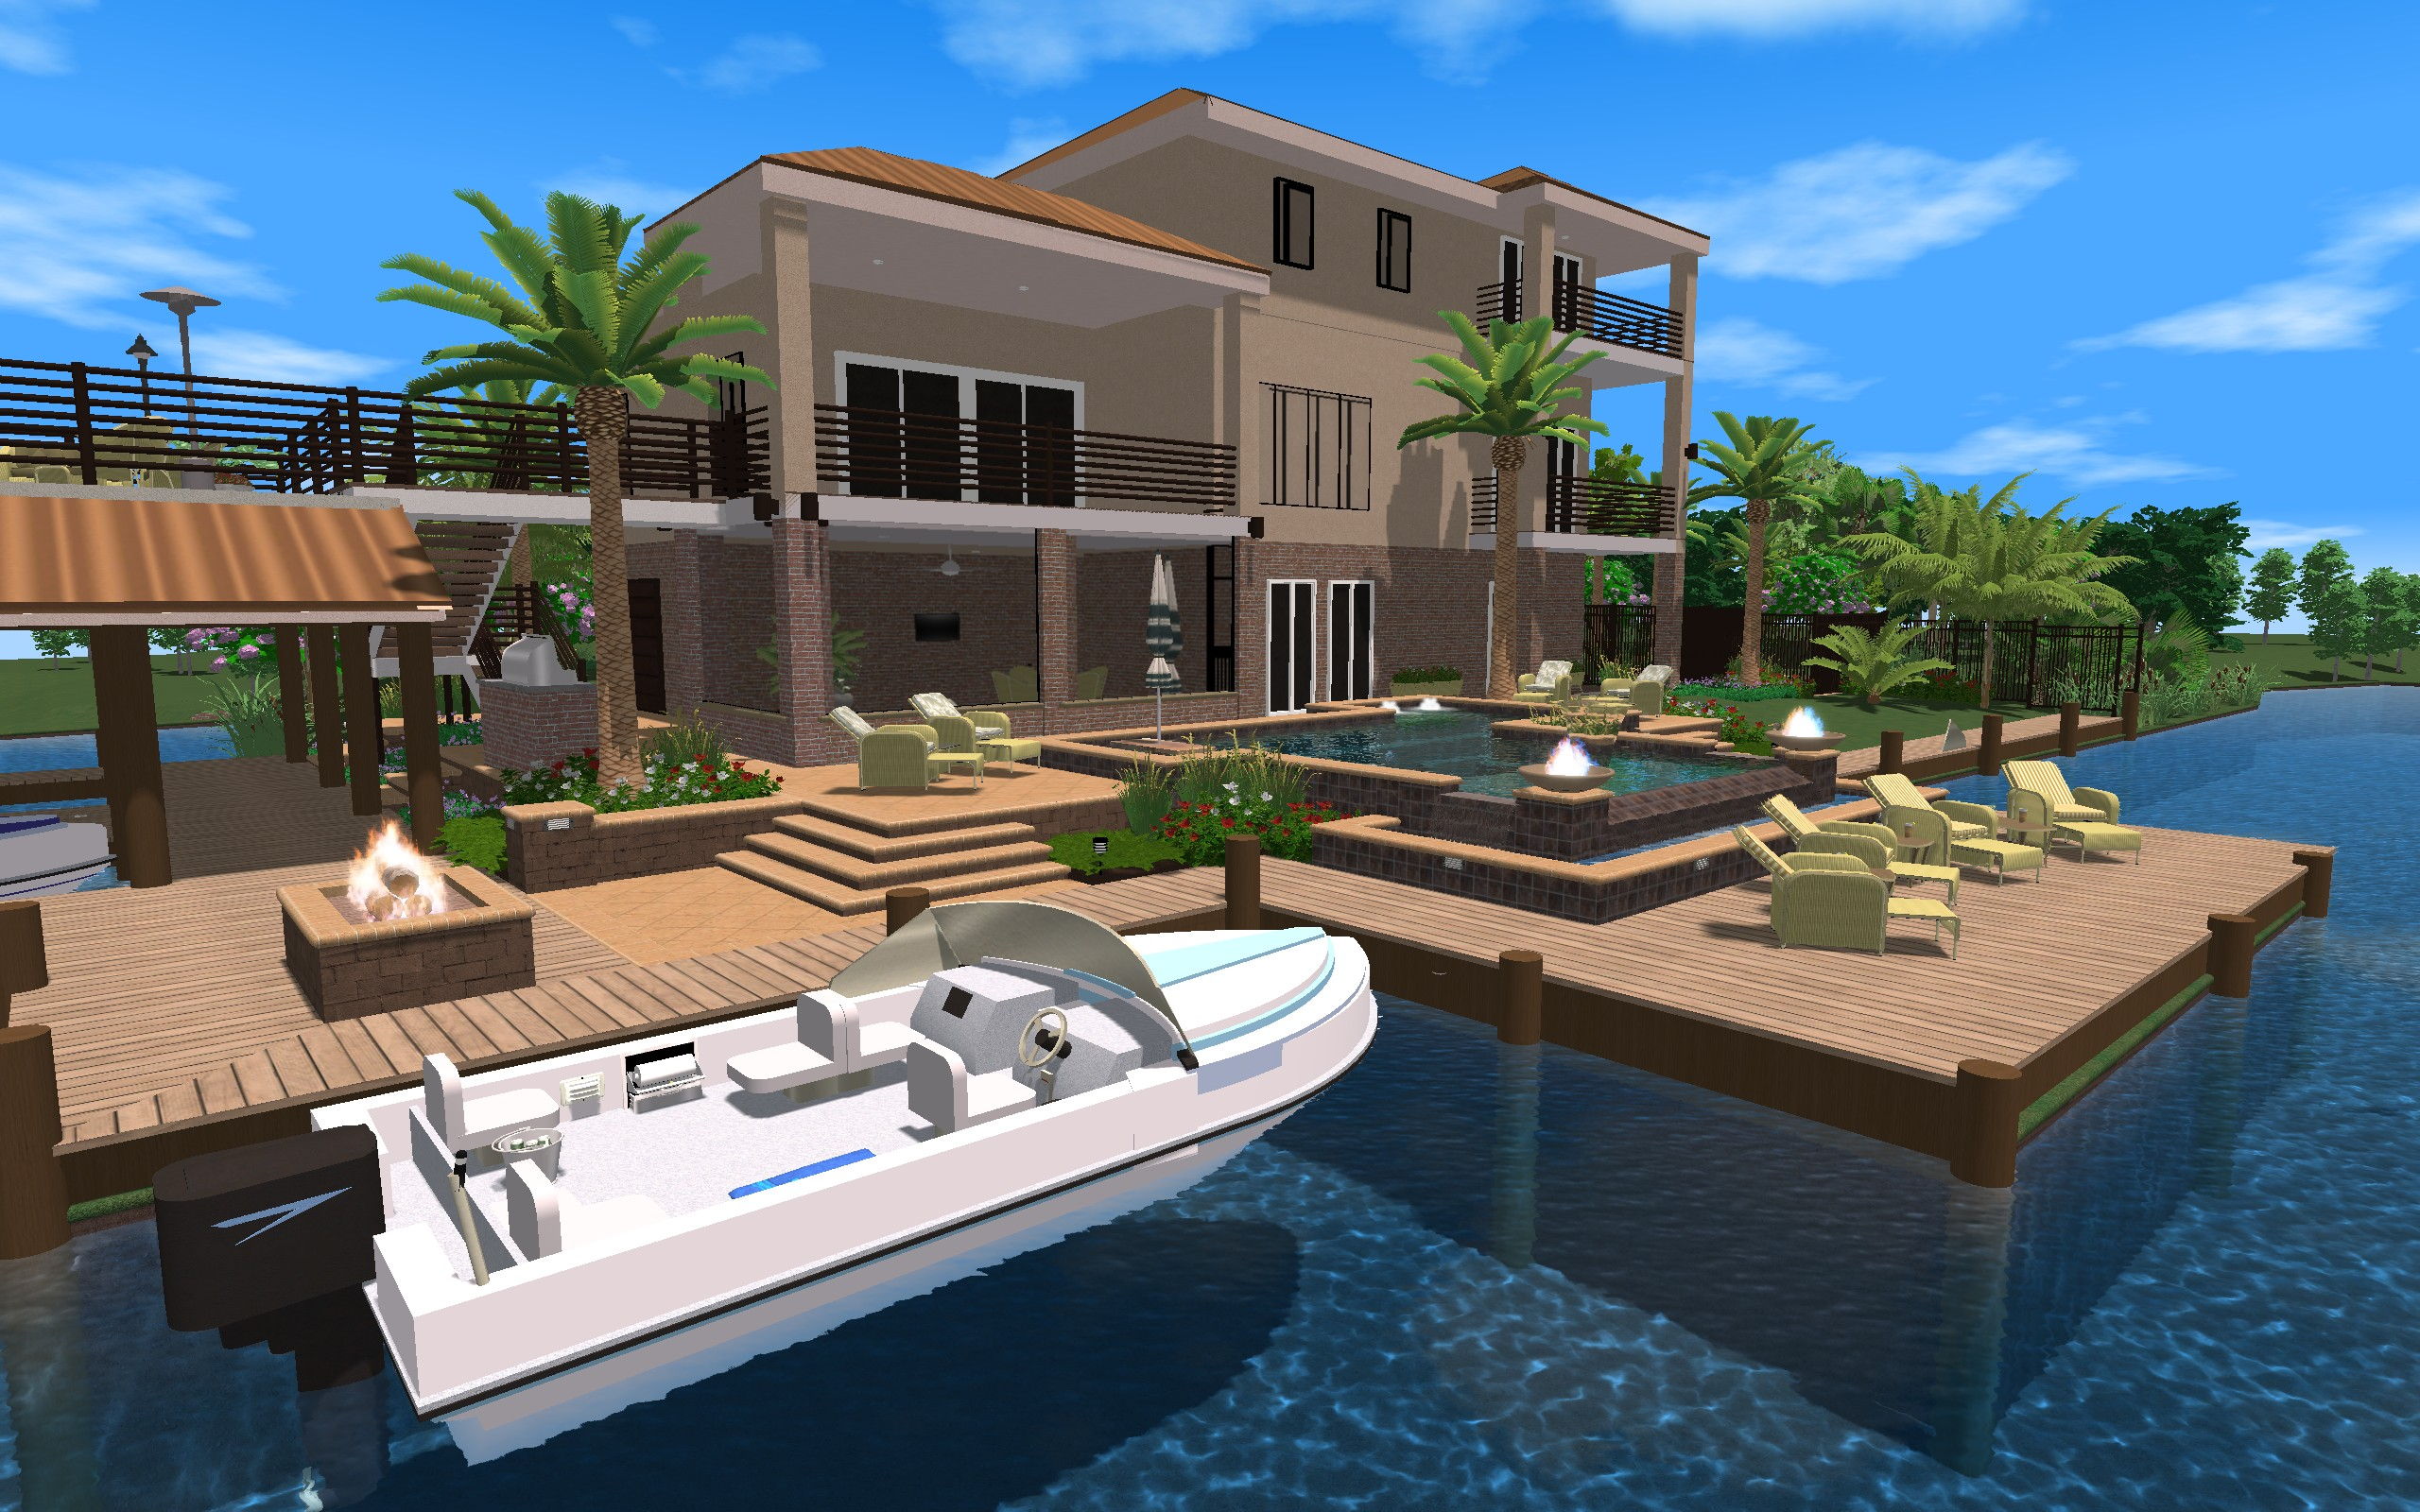 Pool Studio 3d Swimming Pool Design Software Continues To Amaze With - Swimming-pool-designing